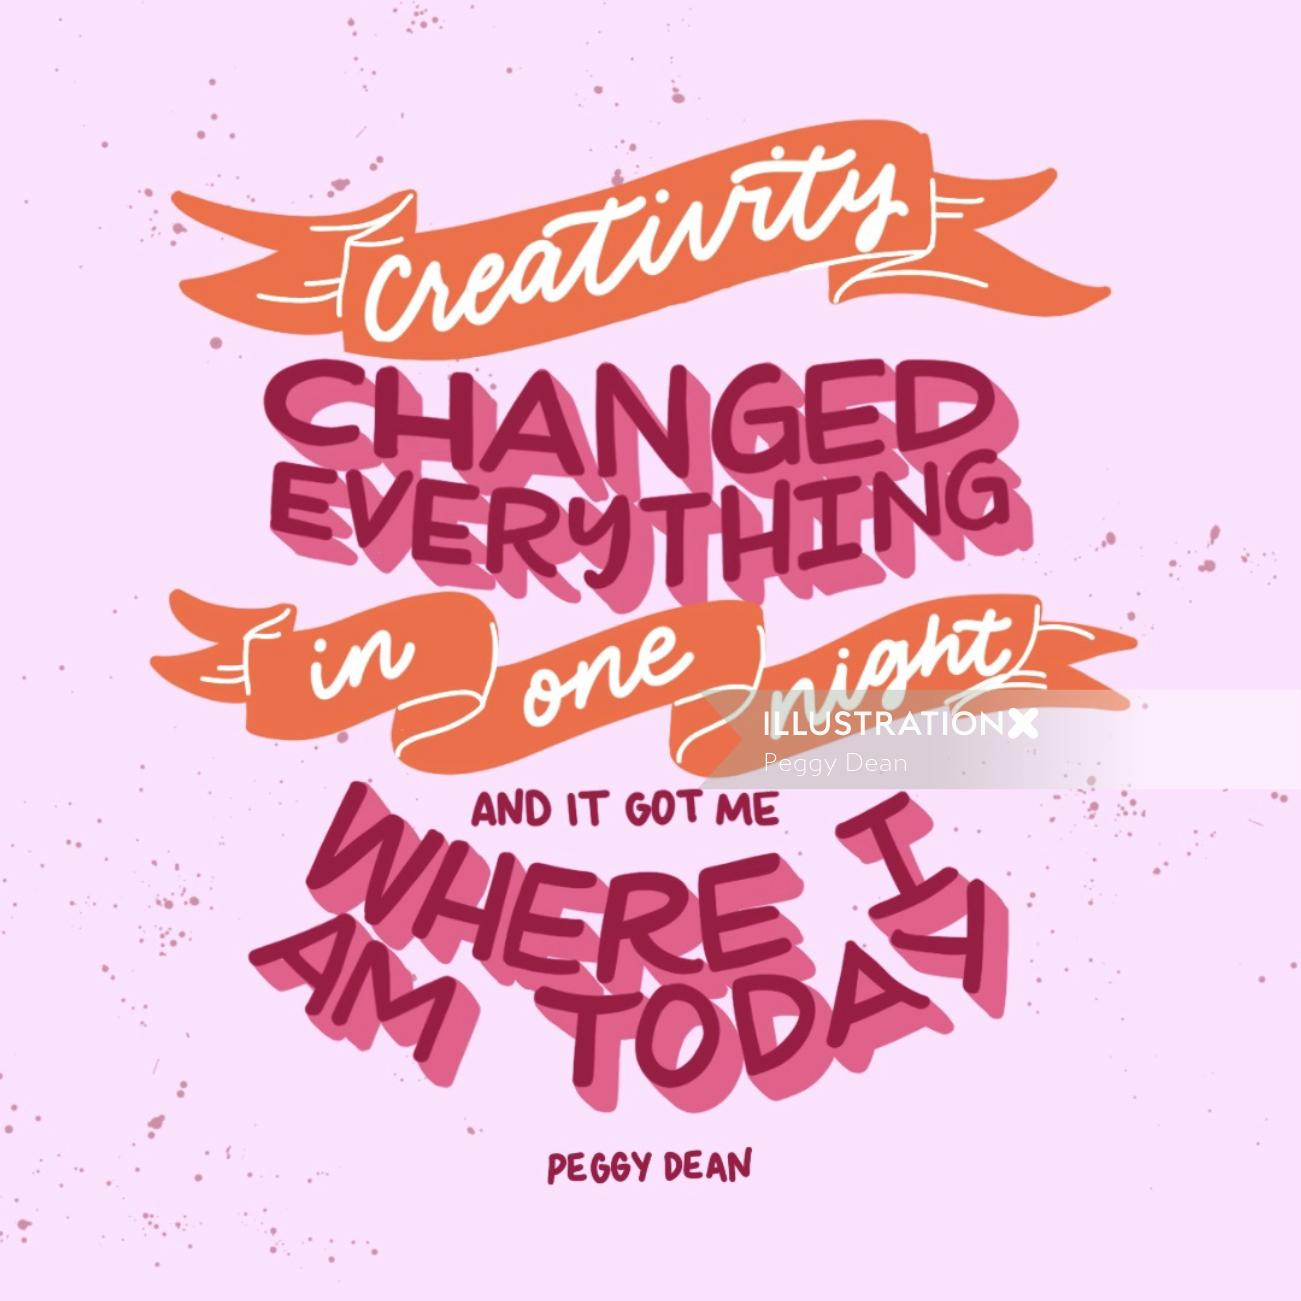 Lettering Creativity changed everything